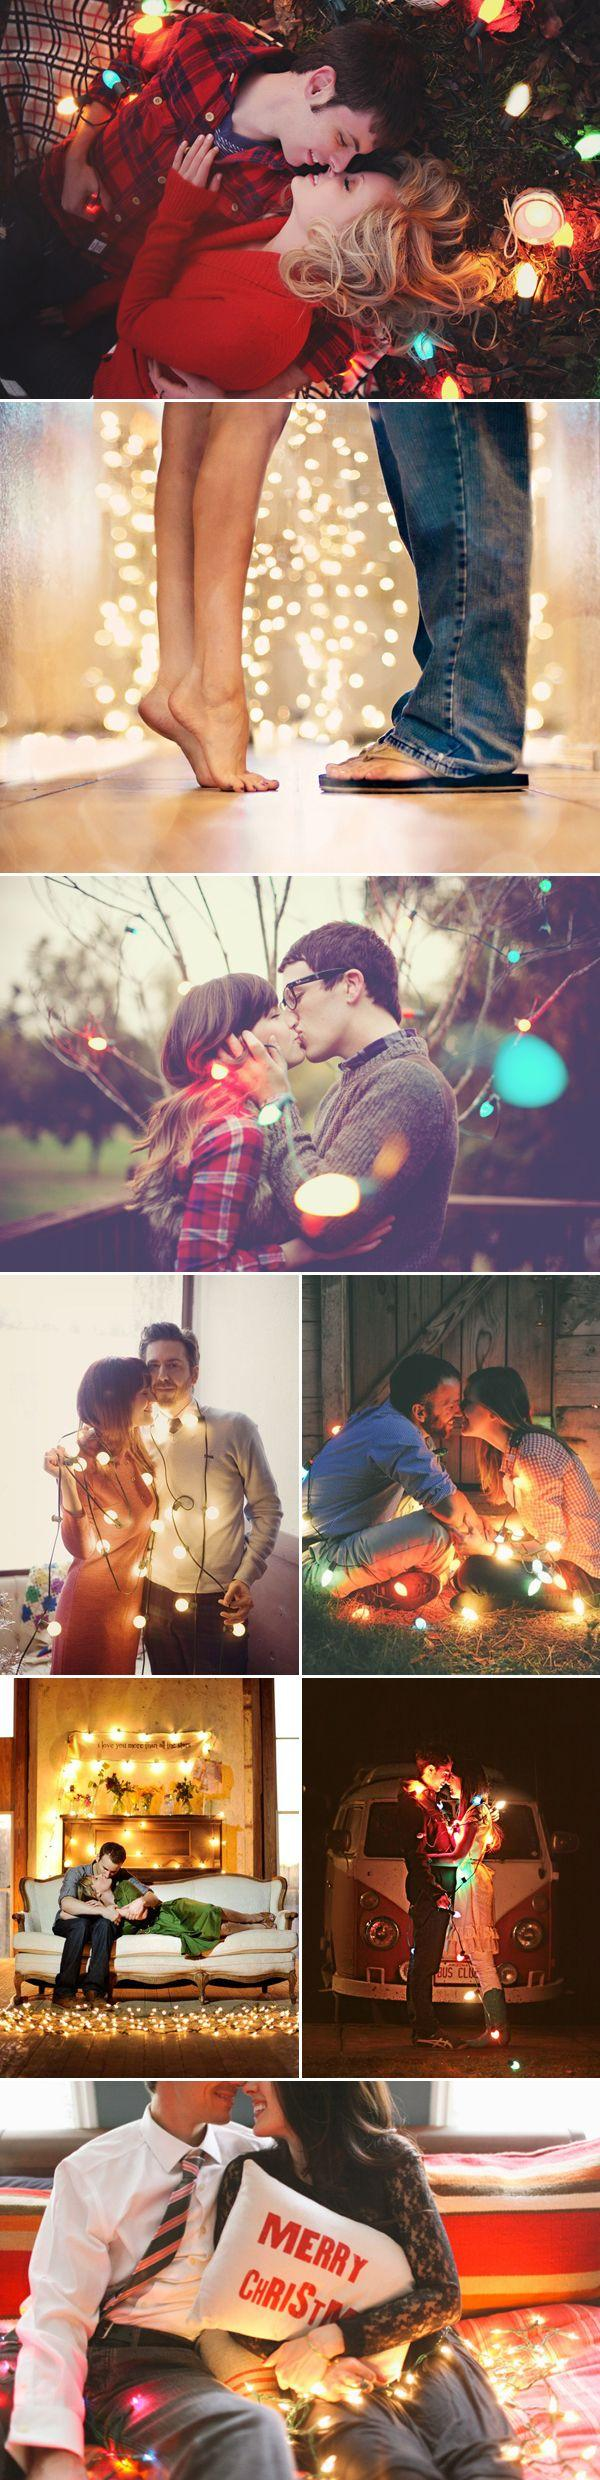 Свадьба - 20 Cute Christmas Photo Ideas For Couples To Show Love